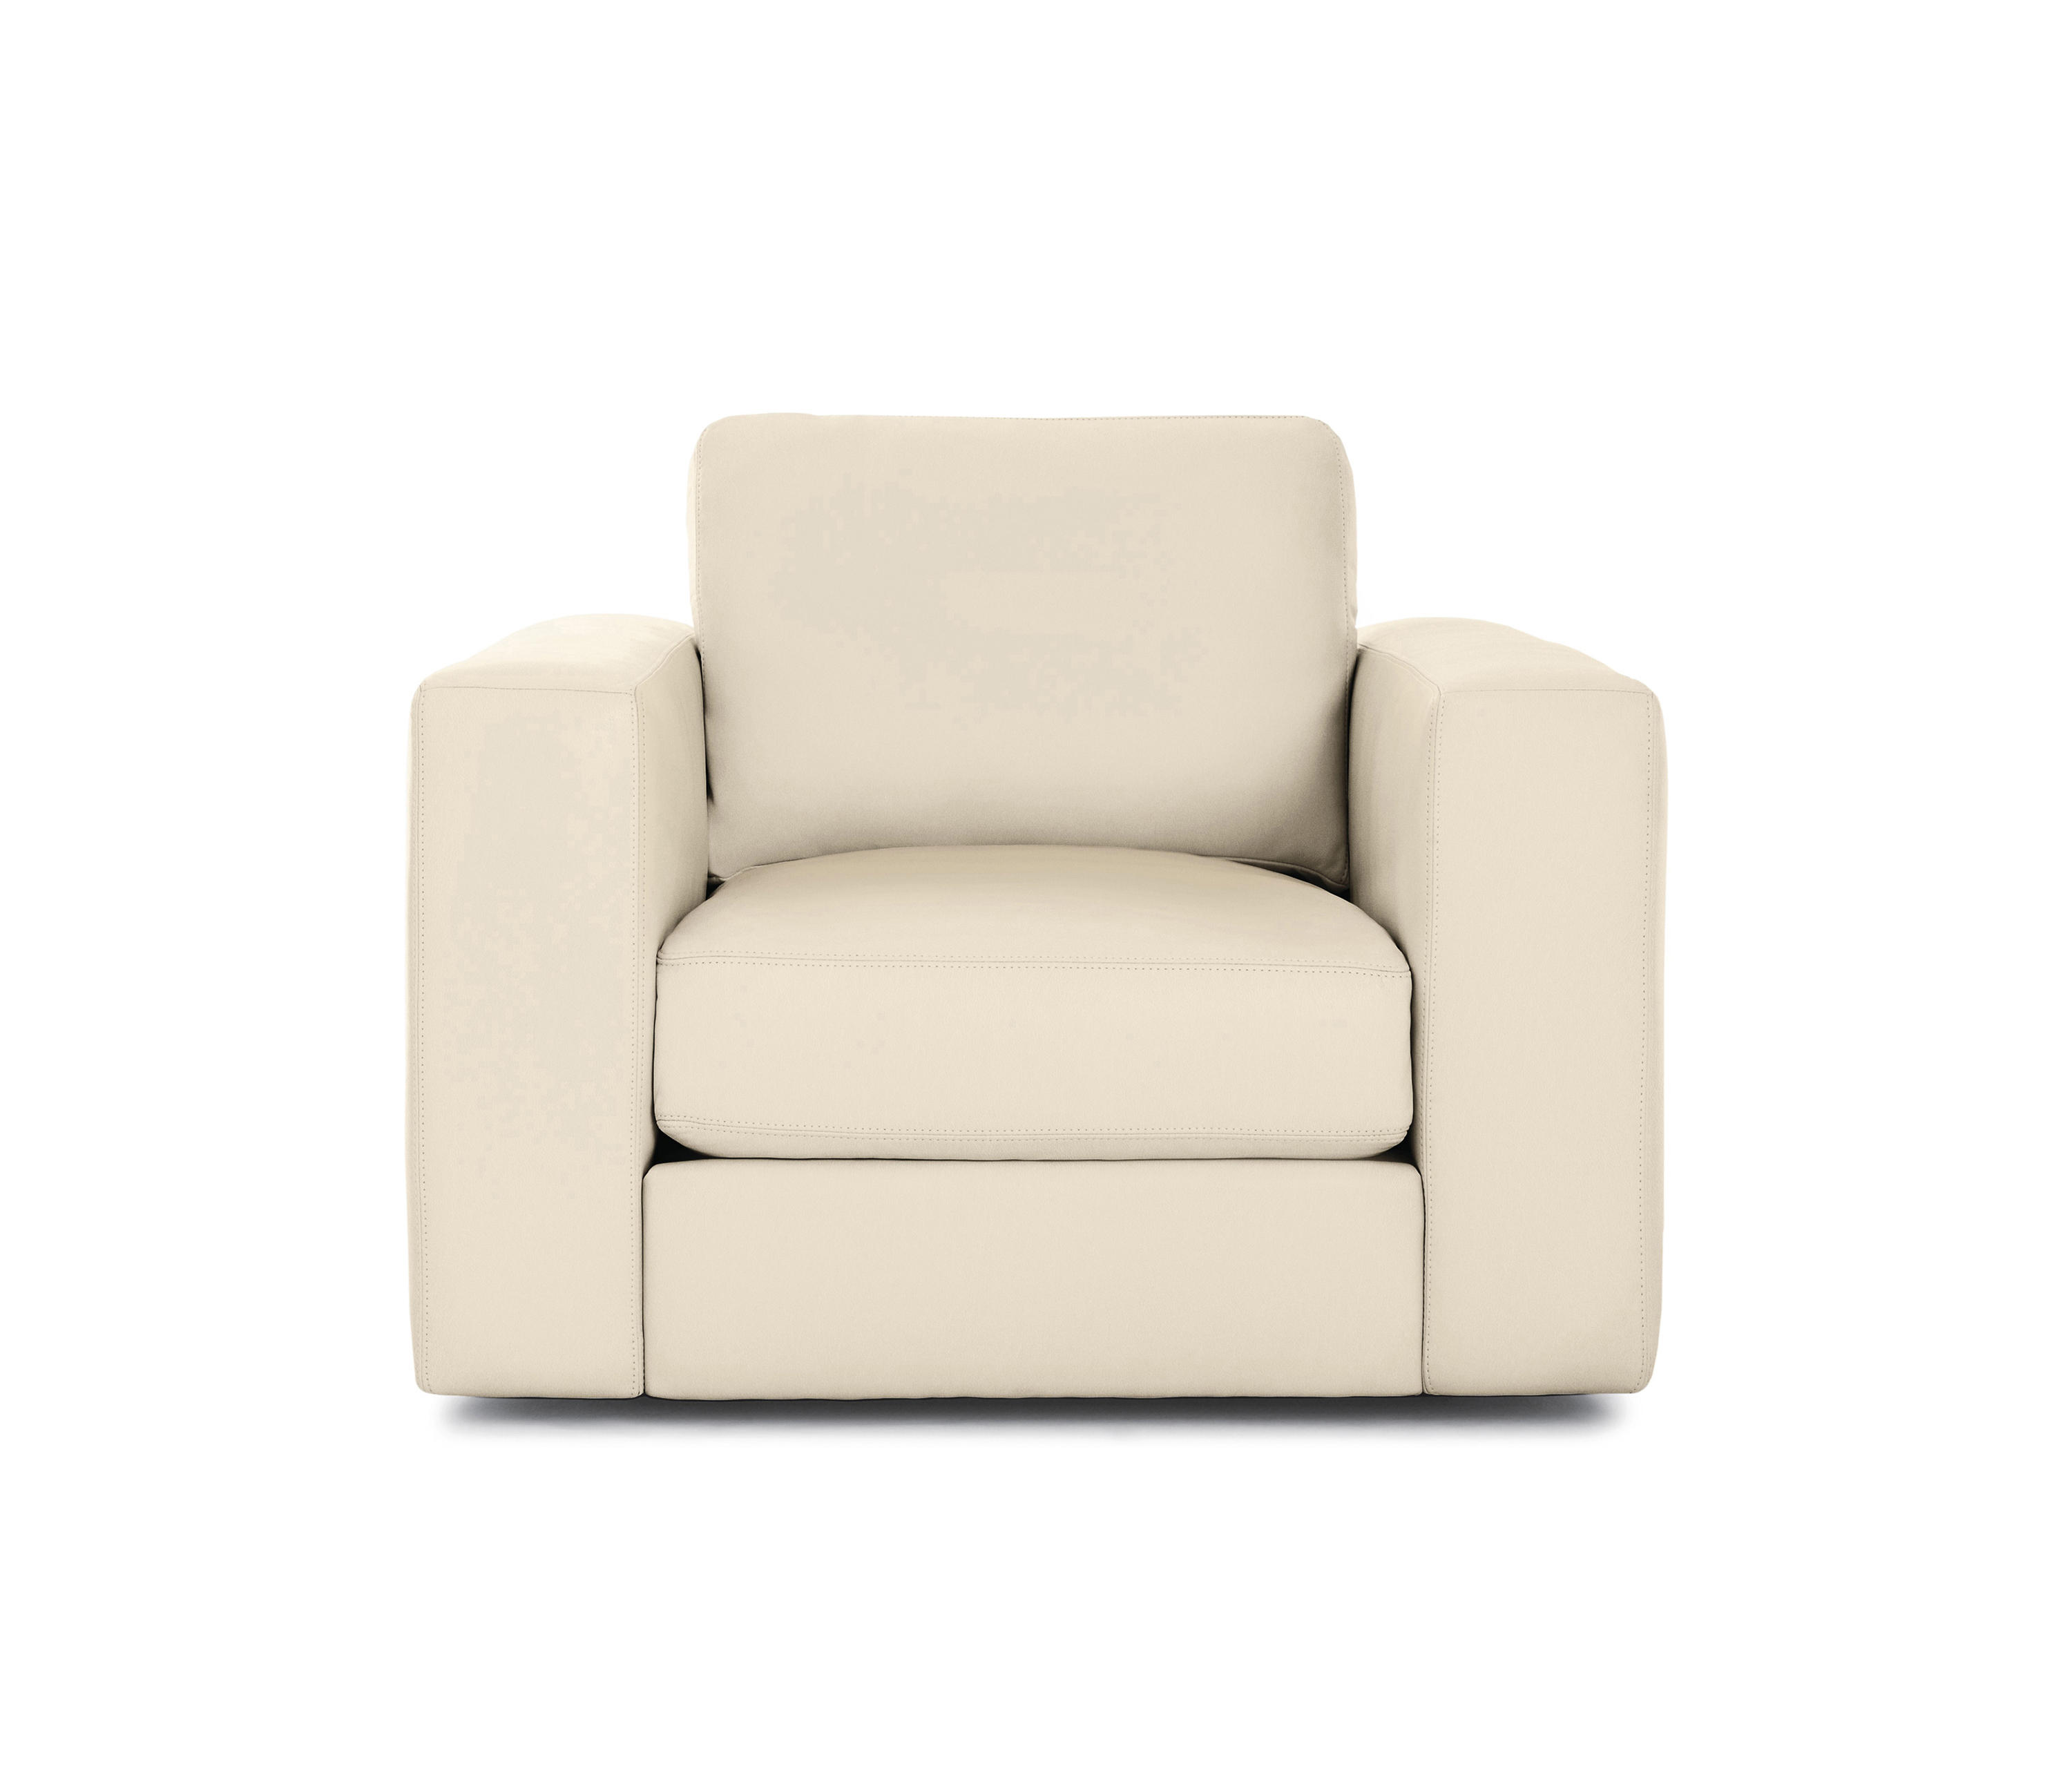 REID SWIVEL ARMCHAIR IN LEATHER - Armchairs from Design ...